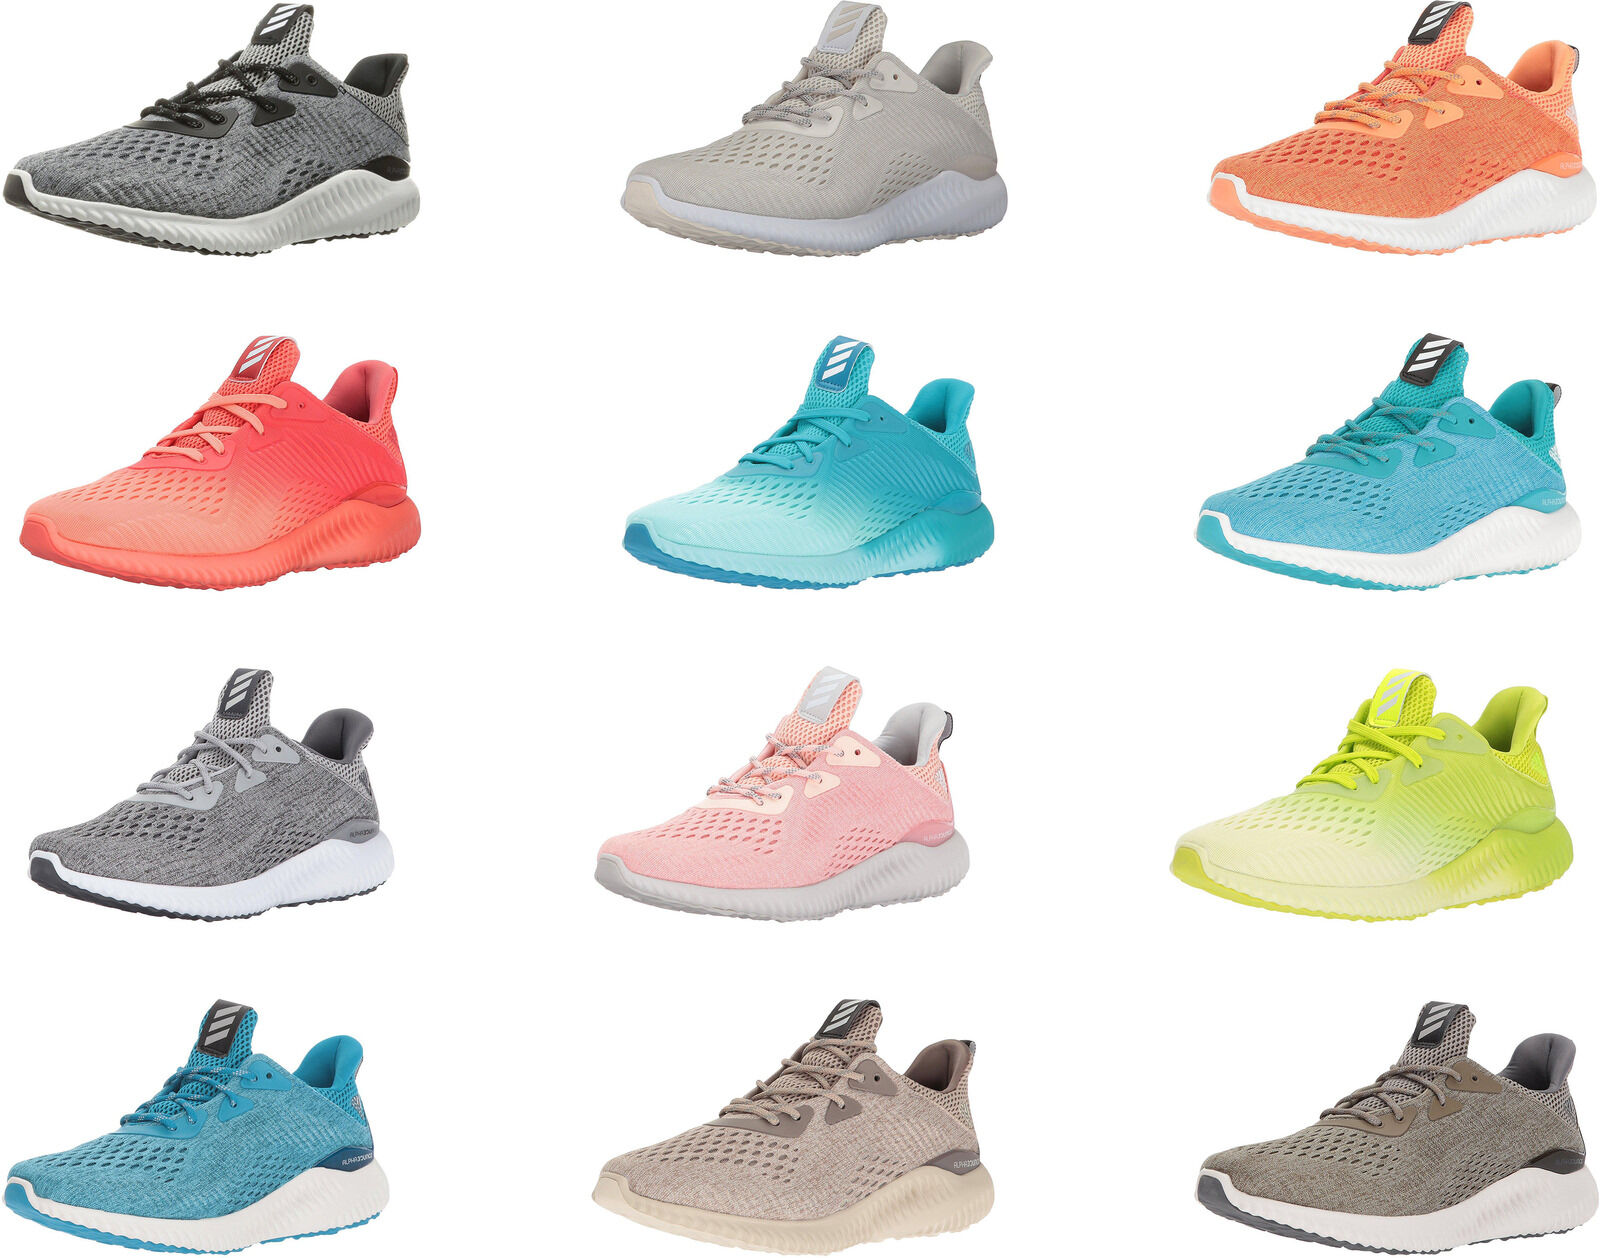 adidas Women's Alphabounce EM W Running Shoes, 12 Colors